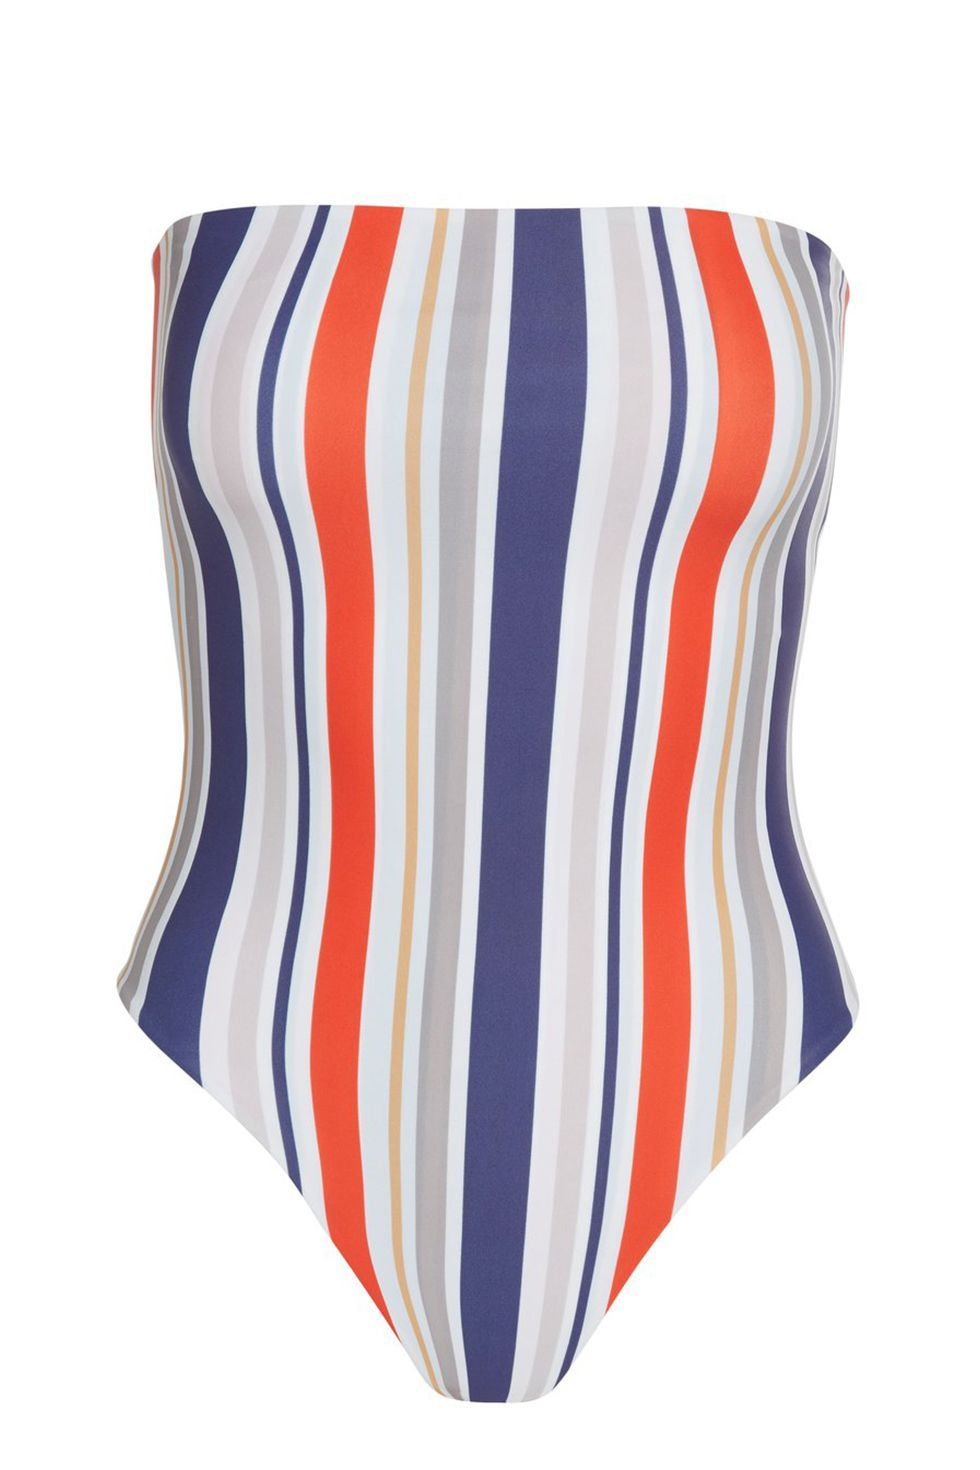 Best Strapless One-Piece Striped One-Piece Swimsuit Cami and Jax $250.00 SHOP IT A swimsuit that throws it back to your favorite tube tops of yesteryear. Unlike those ones, however, this one piece won't slide around—it'll stay right where it is, thanks to the side boning on top.